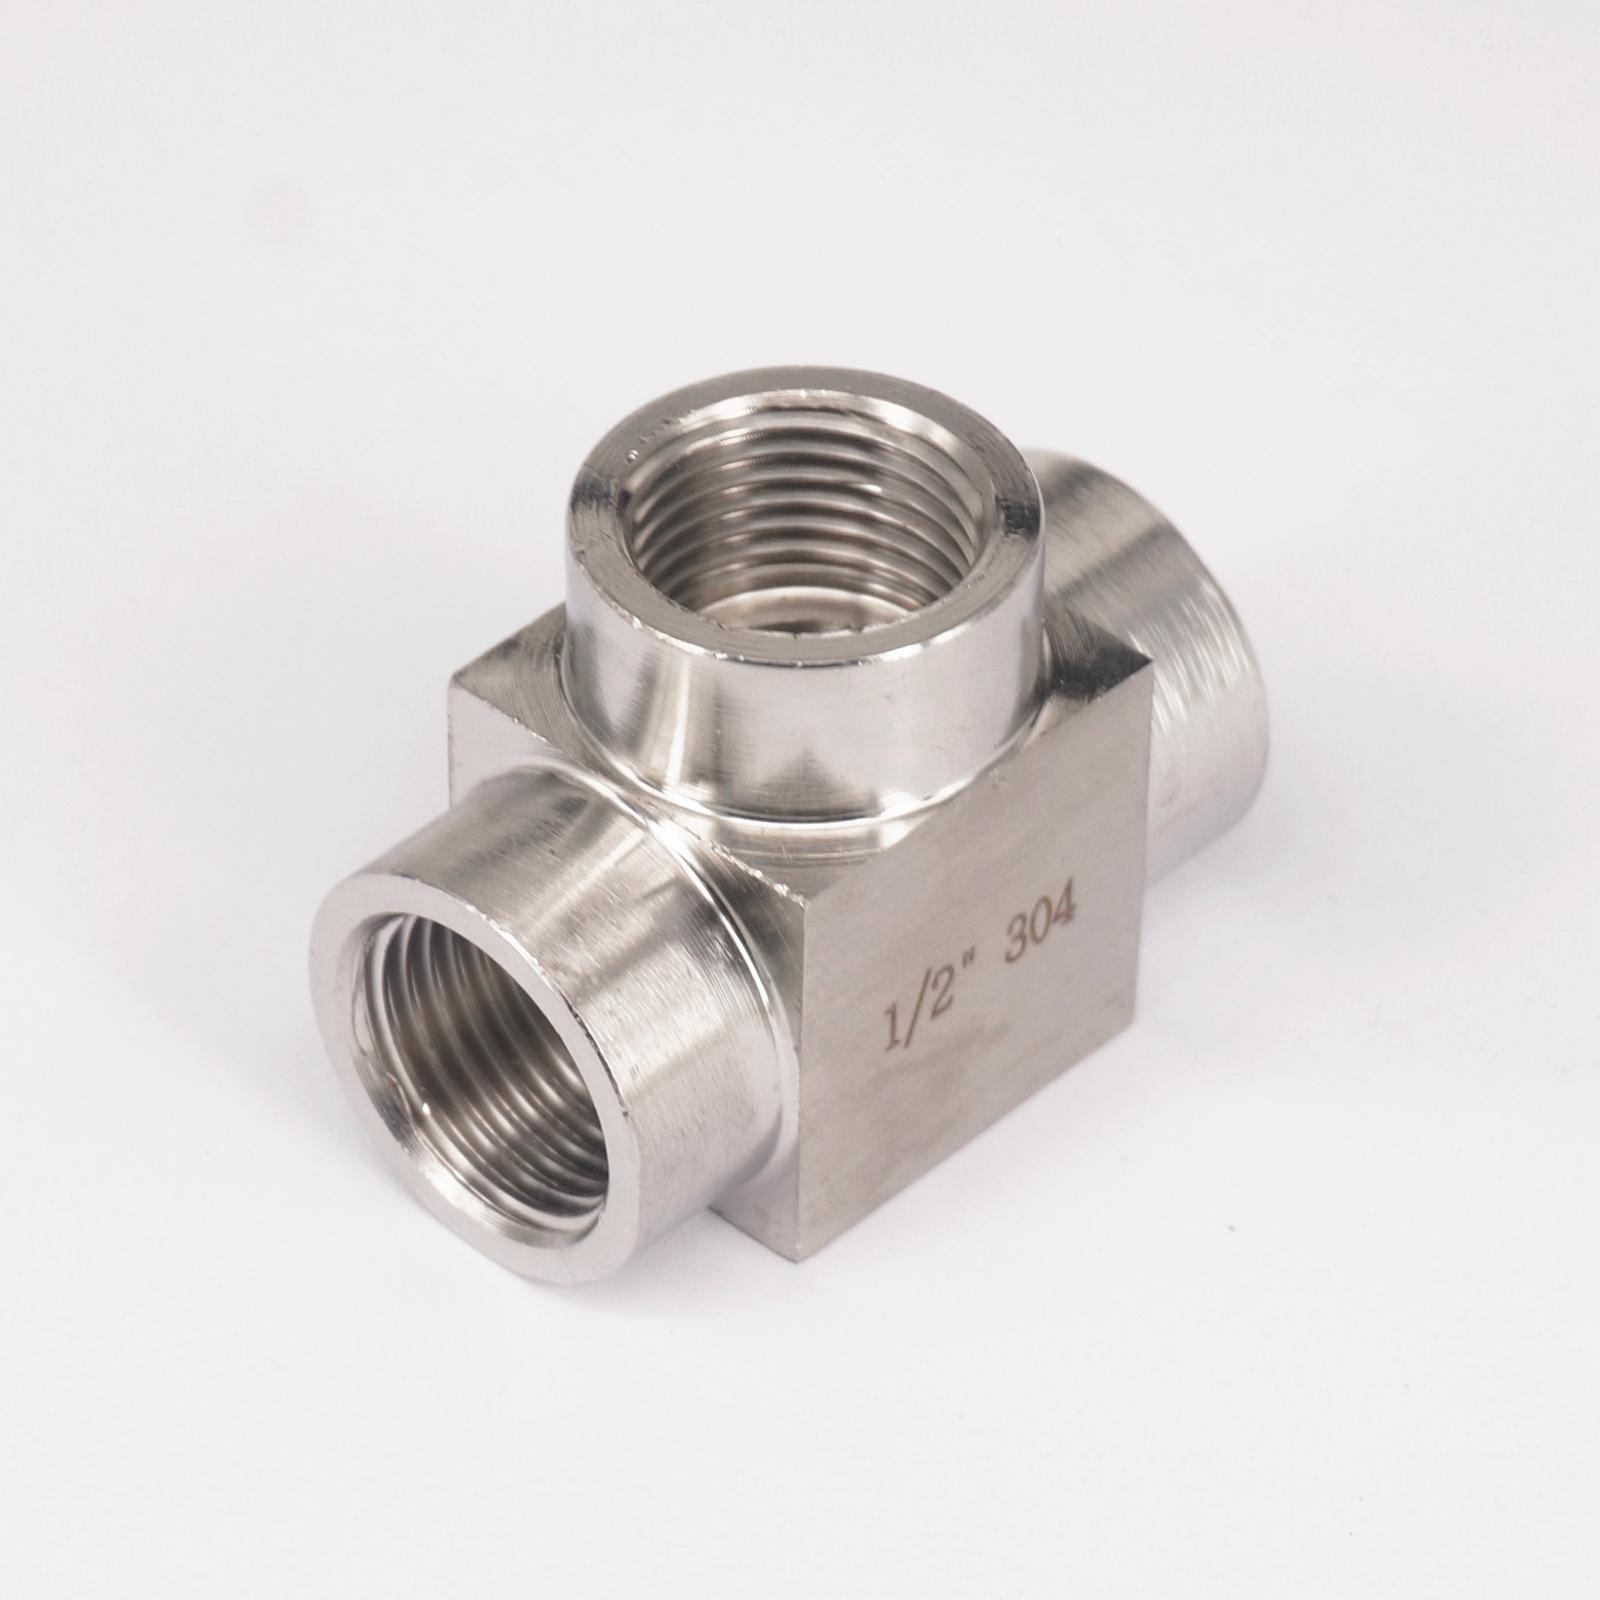 Tee 3 Way 304 Stainless Steel Pipe Fitting Connector Adapter Equal 1/2 BSP Female Threaded Max Pressure 2.5 Mpa 1 2 male thread equal 300mm extension tube pipe fitting 304 stainless steel connector